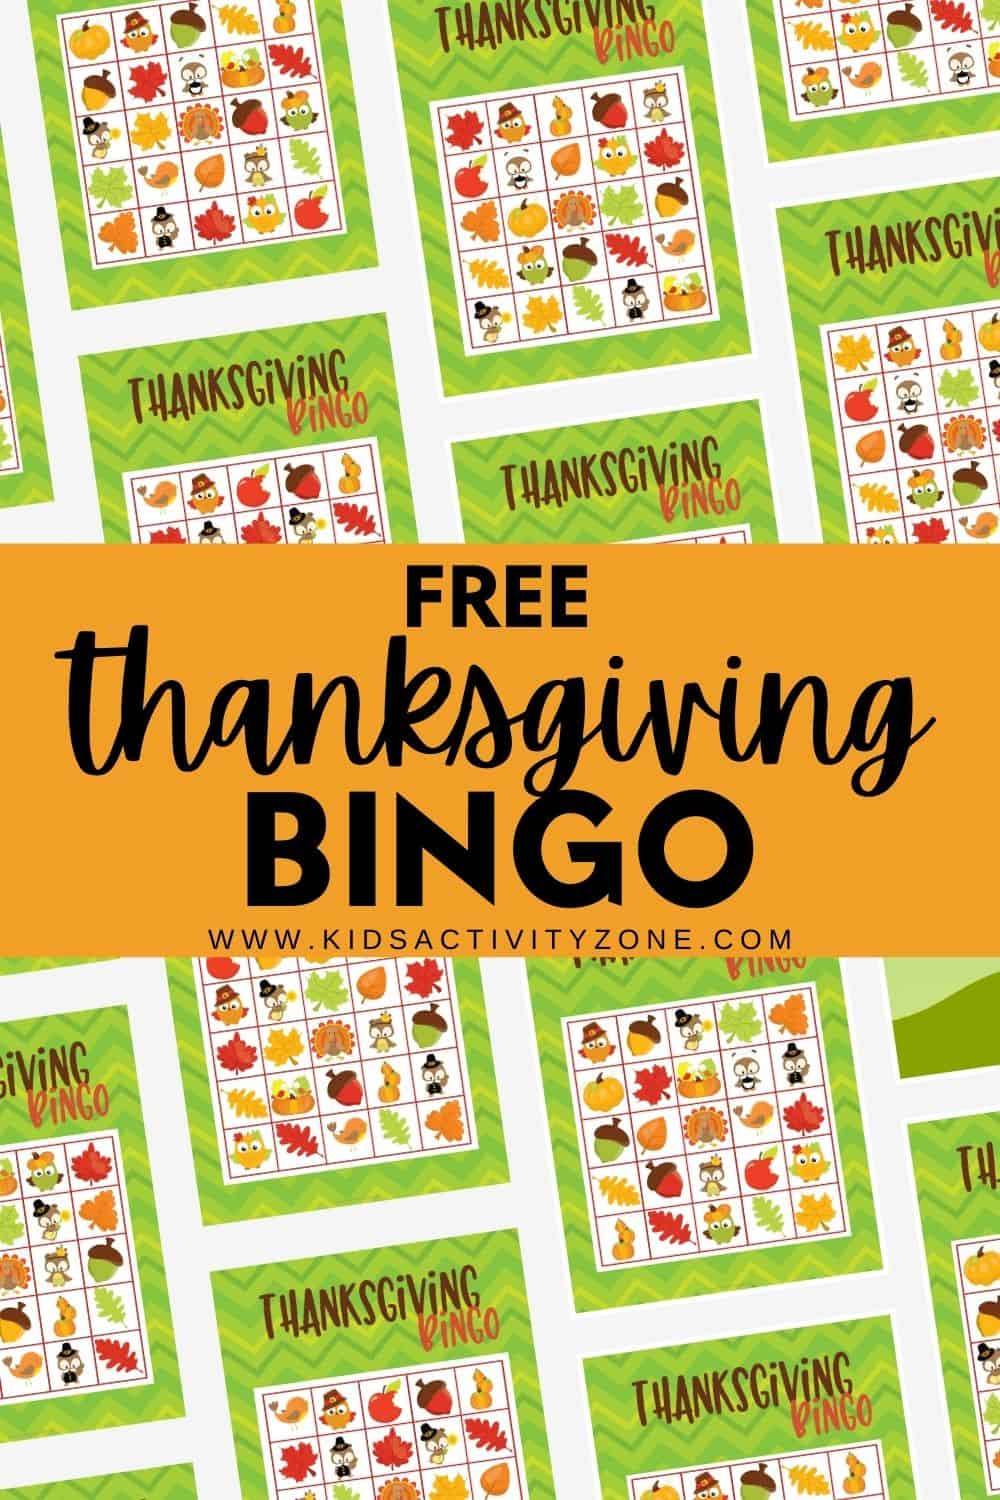 Grab our free Thanksgiving Bingo Cards and keep everyone entertained during the holidays this year! This is a great game for young and old. Also perfect for classrooms, parties, families, and more!